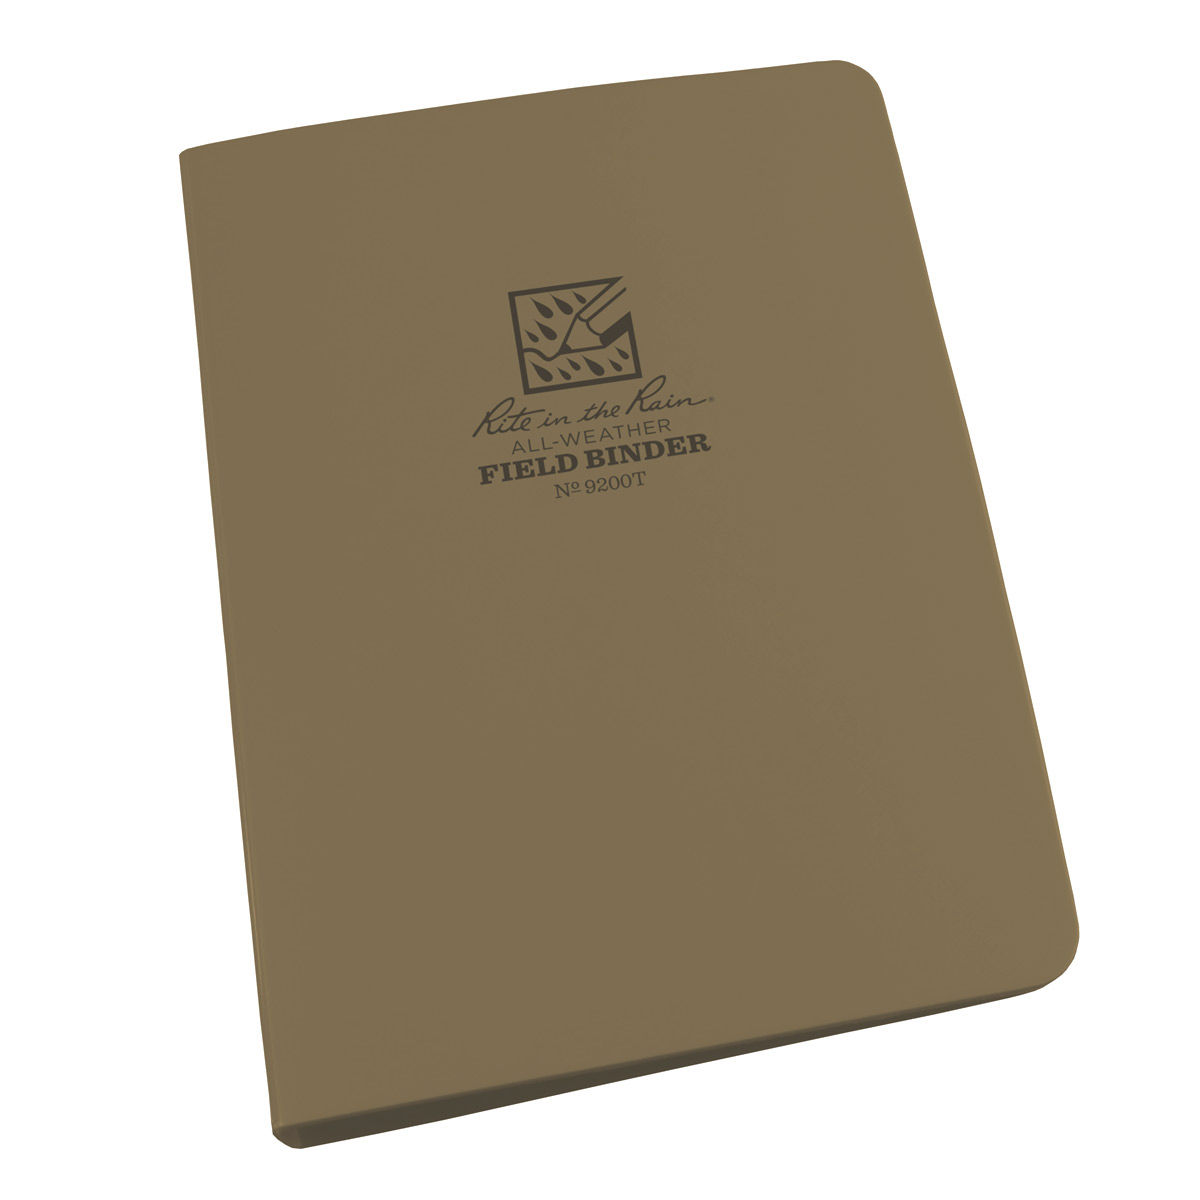 Rite in the Rain Field Ring Binder - Tan